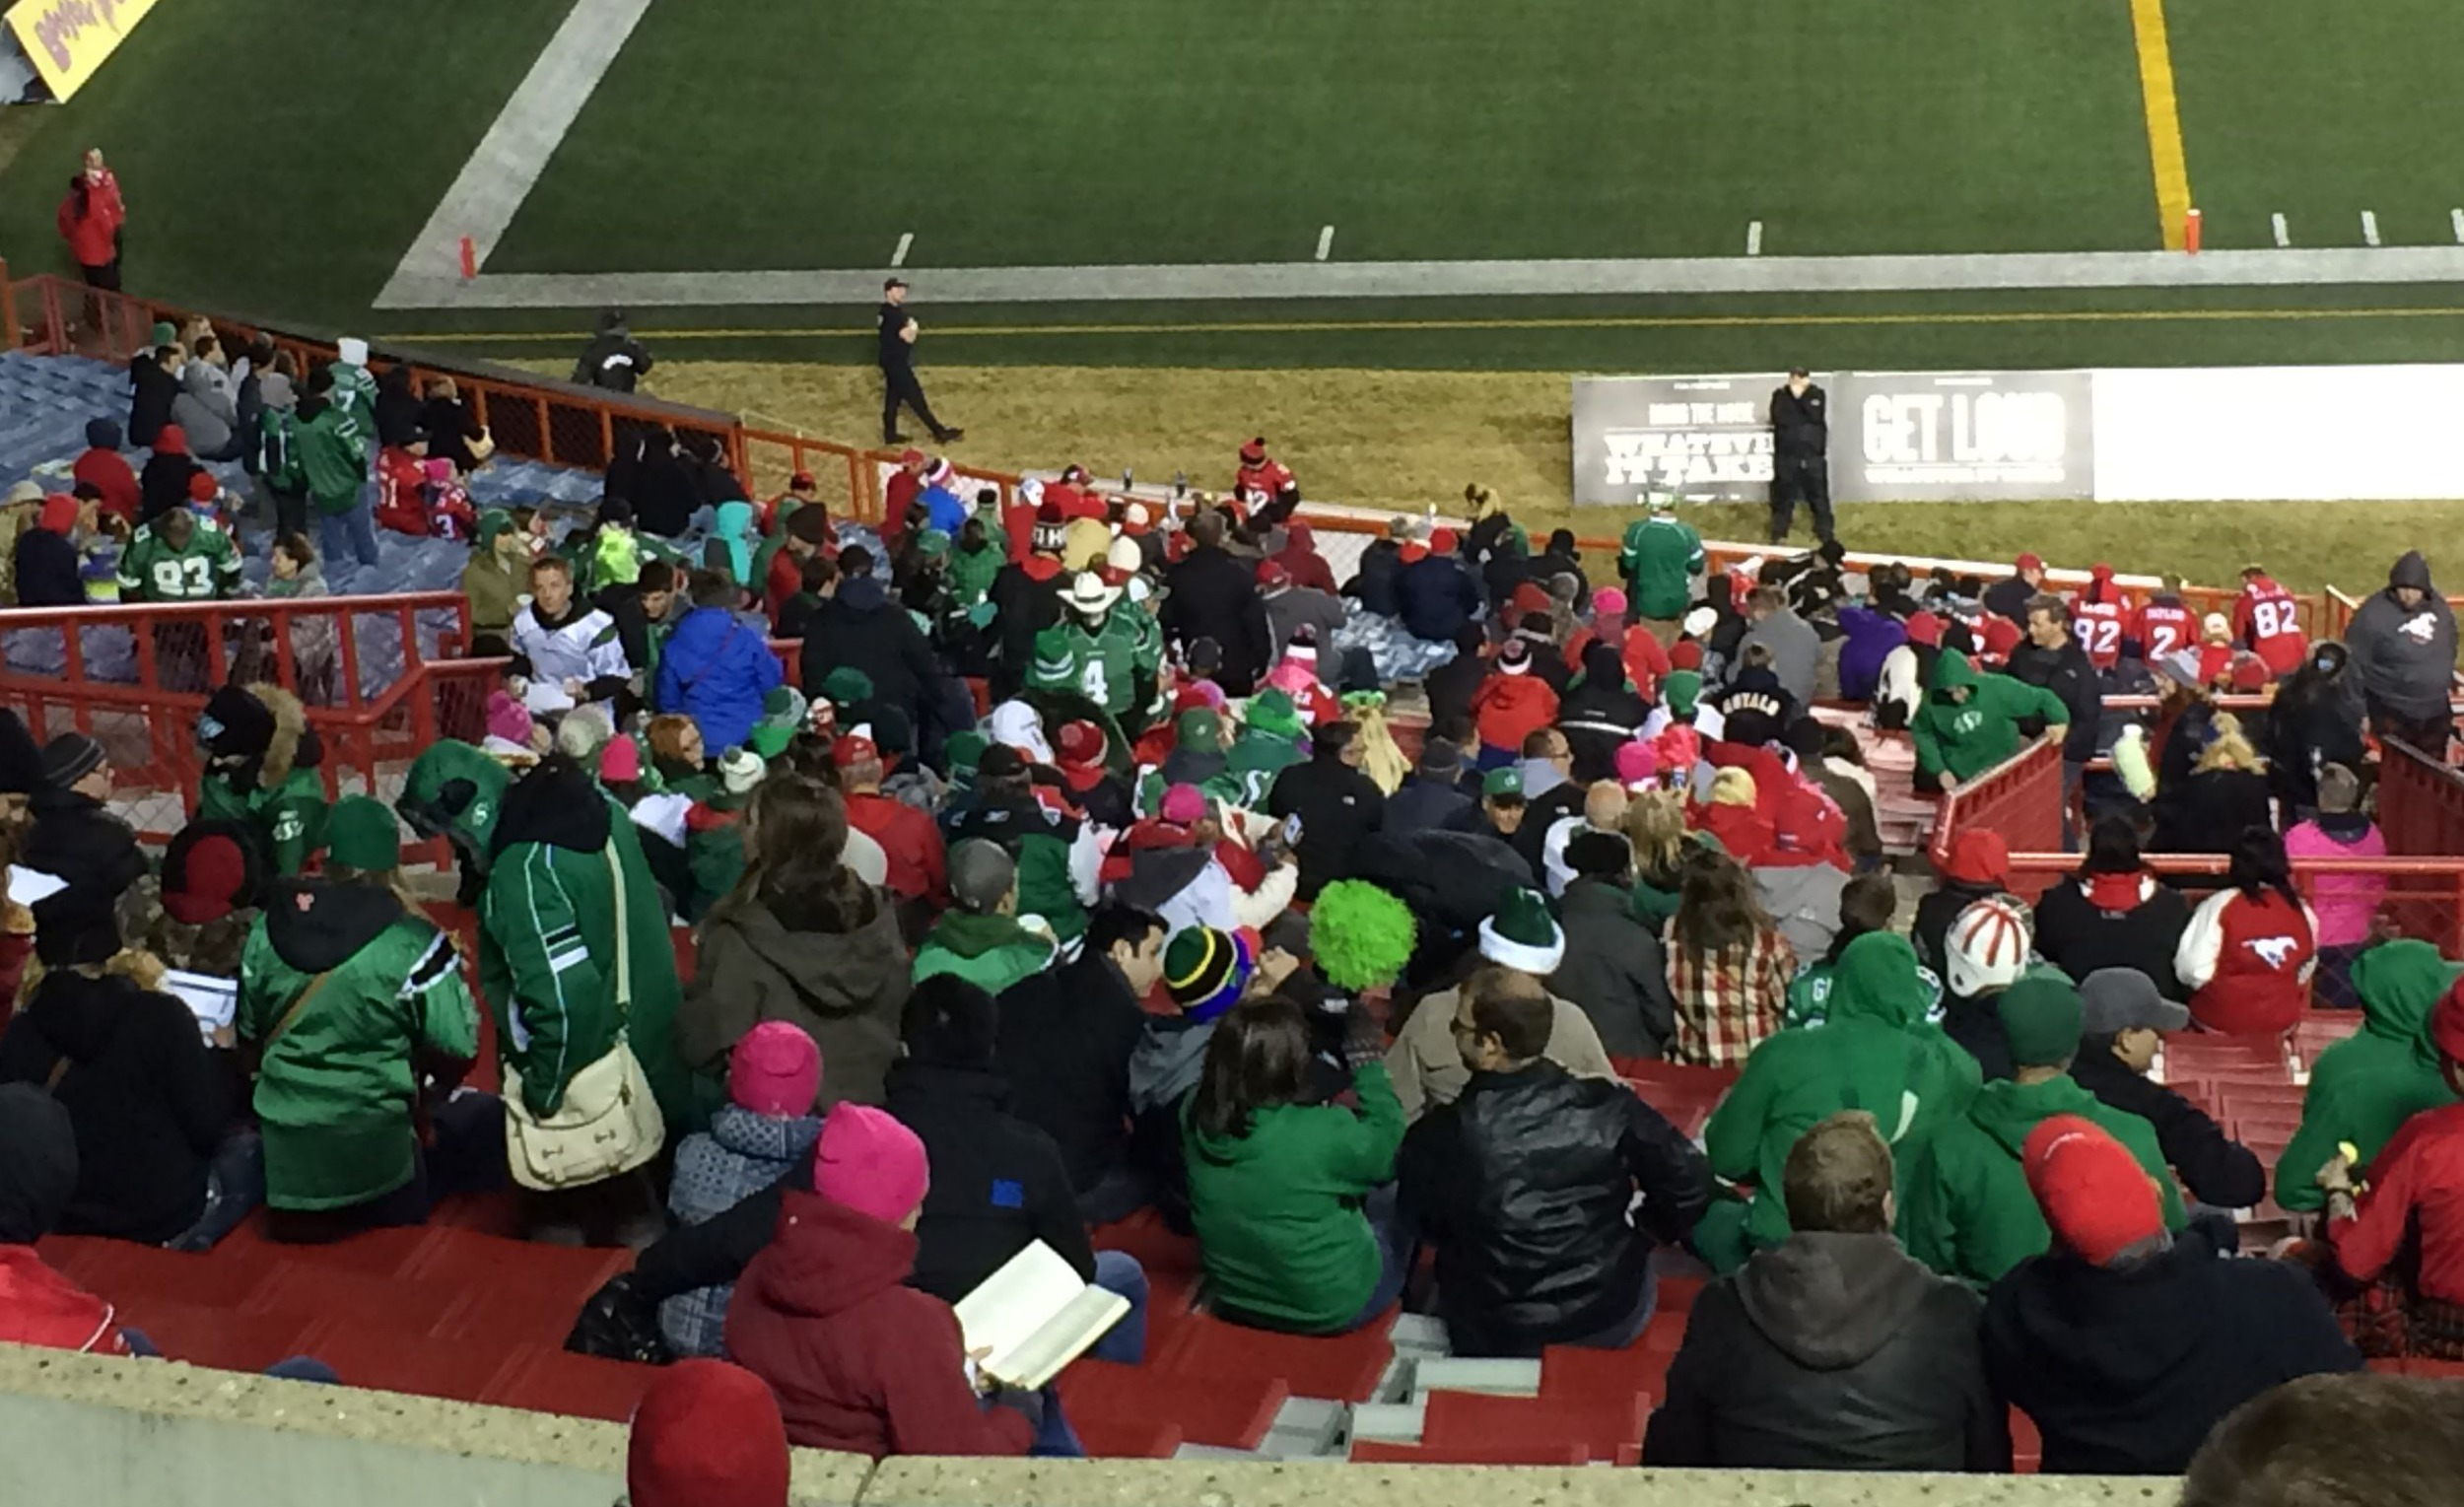 Riderfans at Stadium